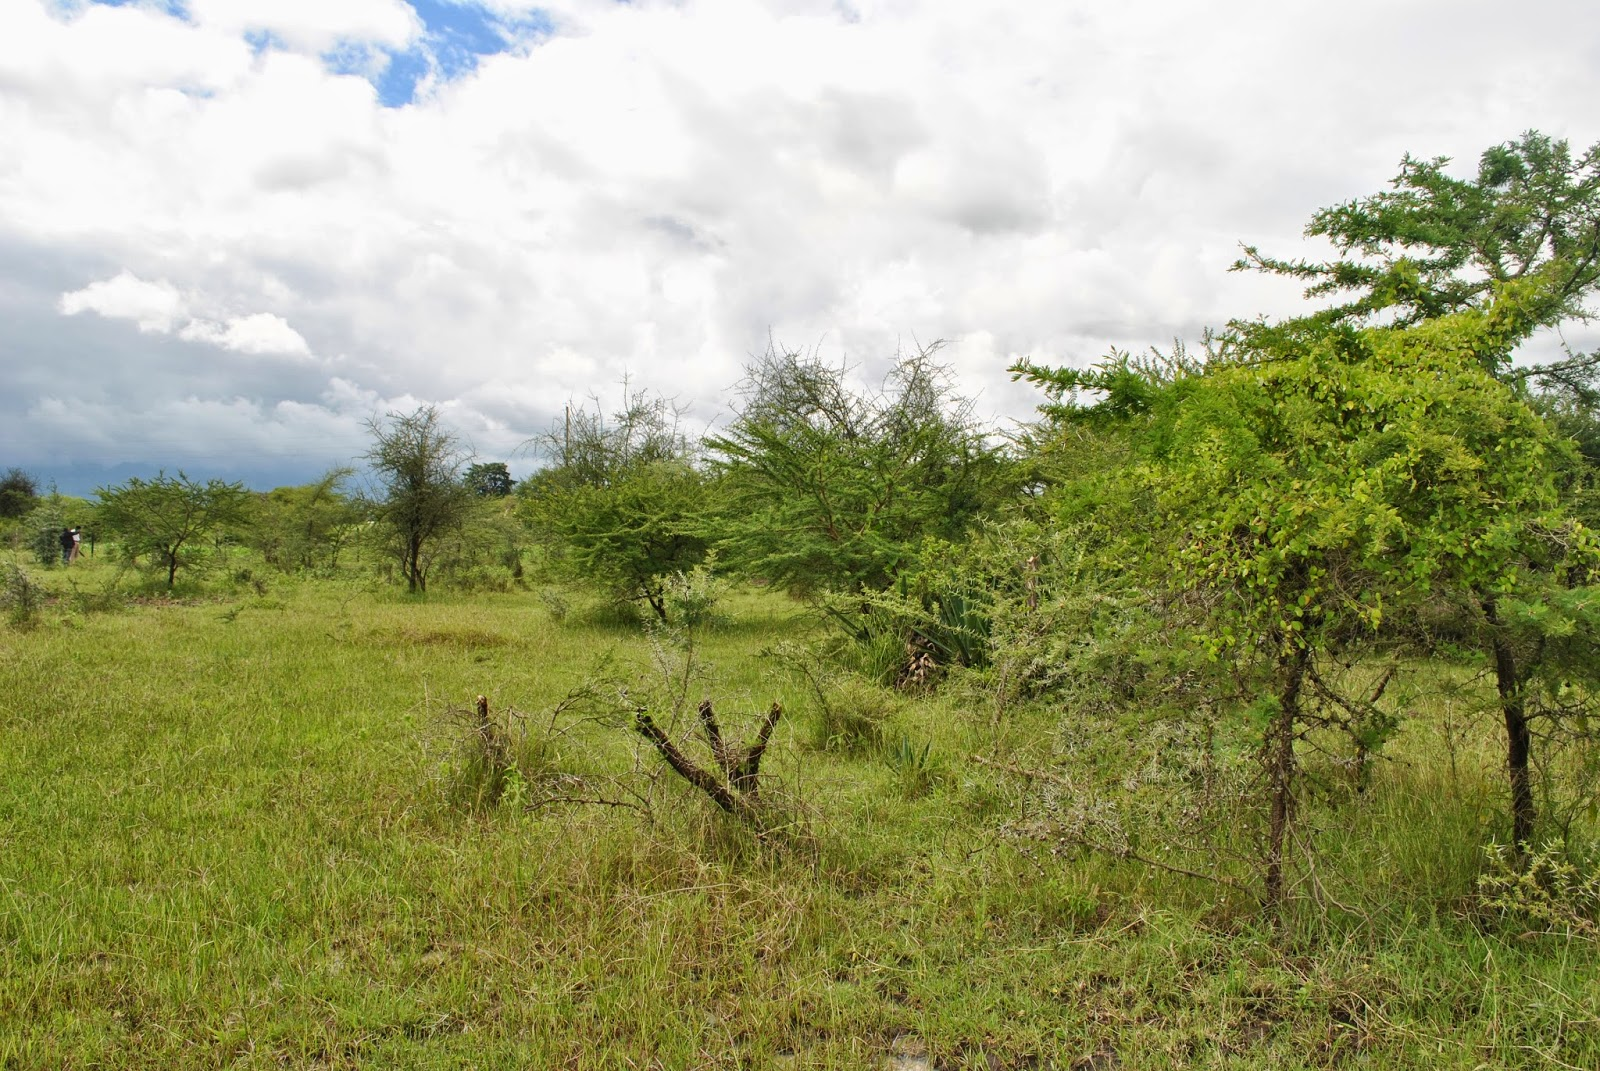 Rent house in tanzania arusha rent houses houses for sale land plots for sale matevesi and - Houses for small plots of land ...